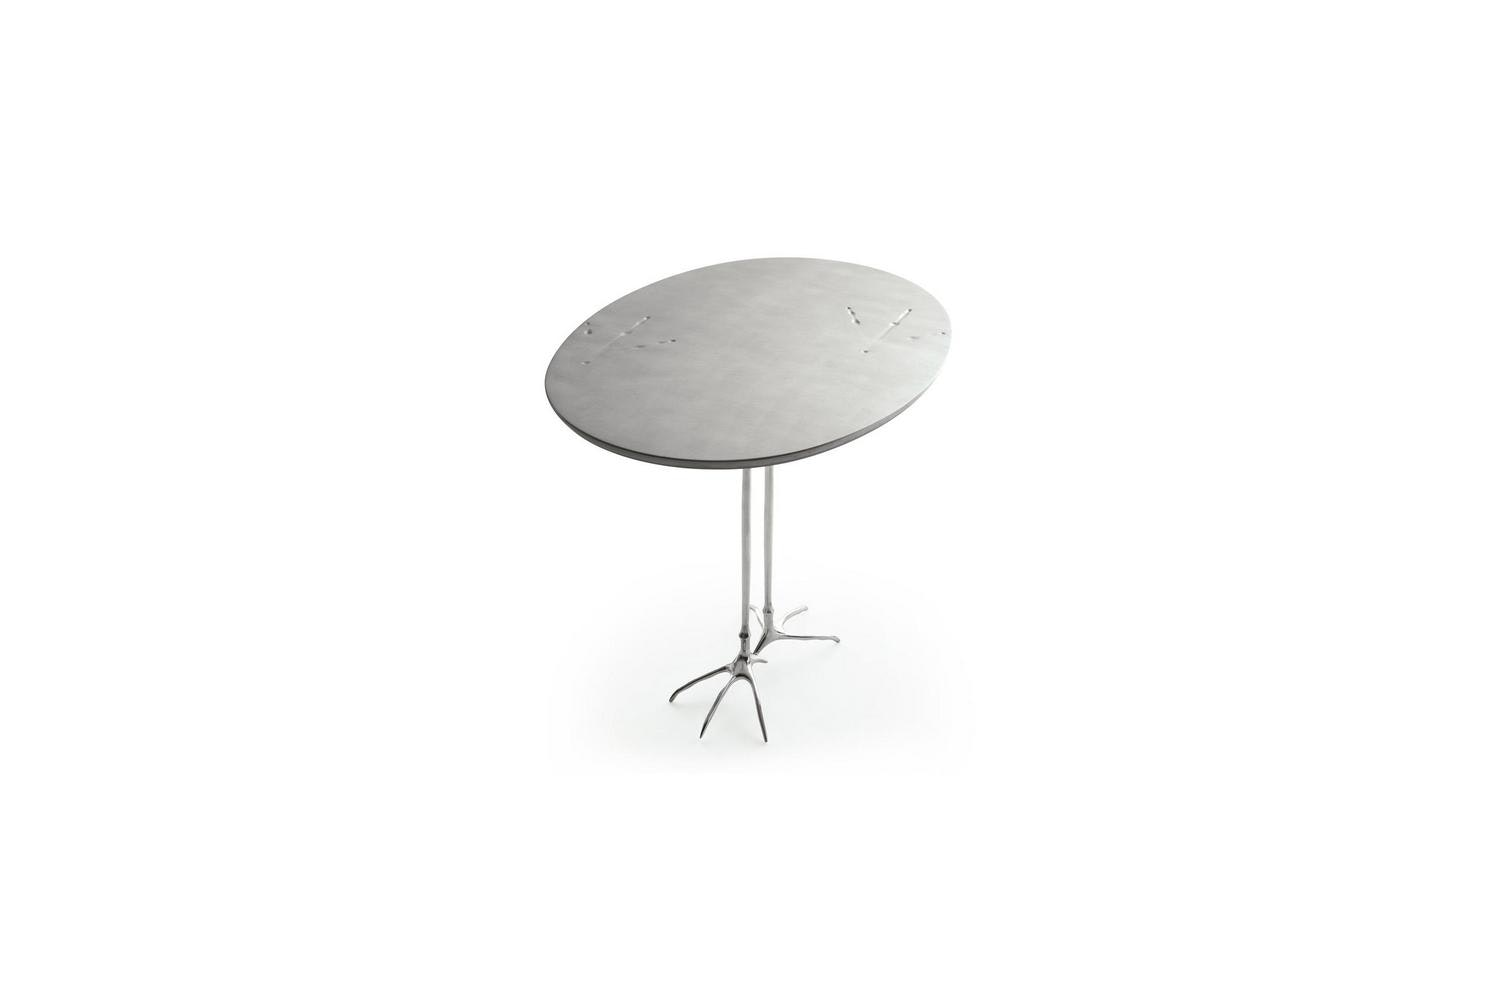 W50 Traccia Table by Meret Oppenheim for Cassina